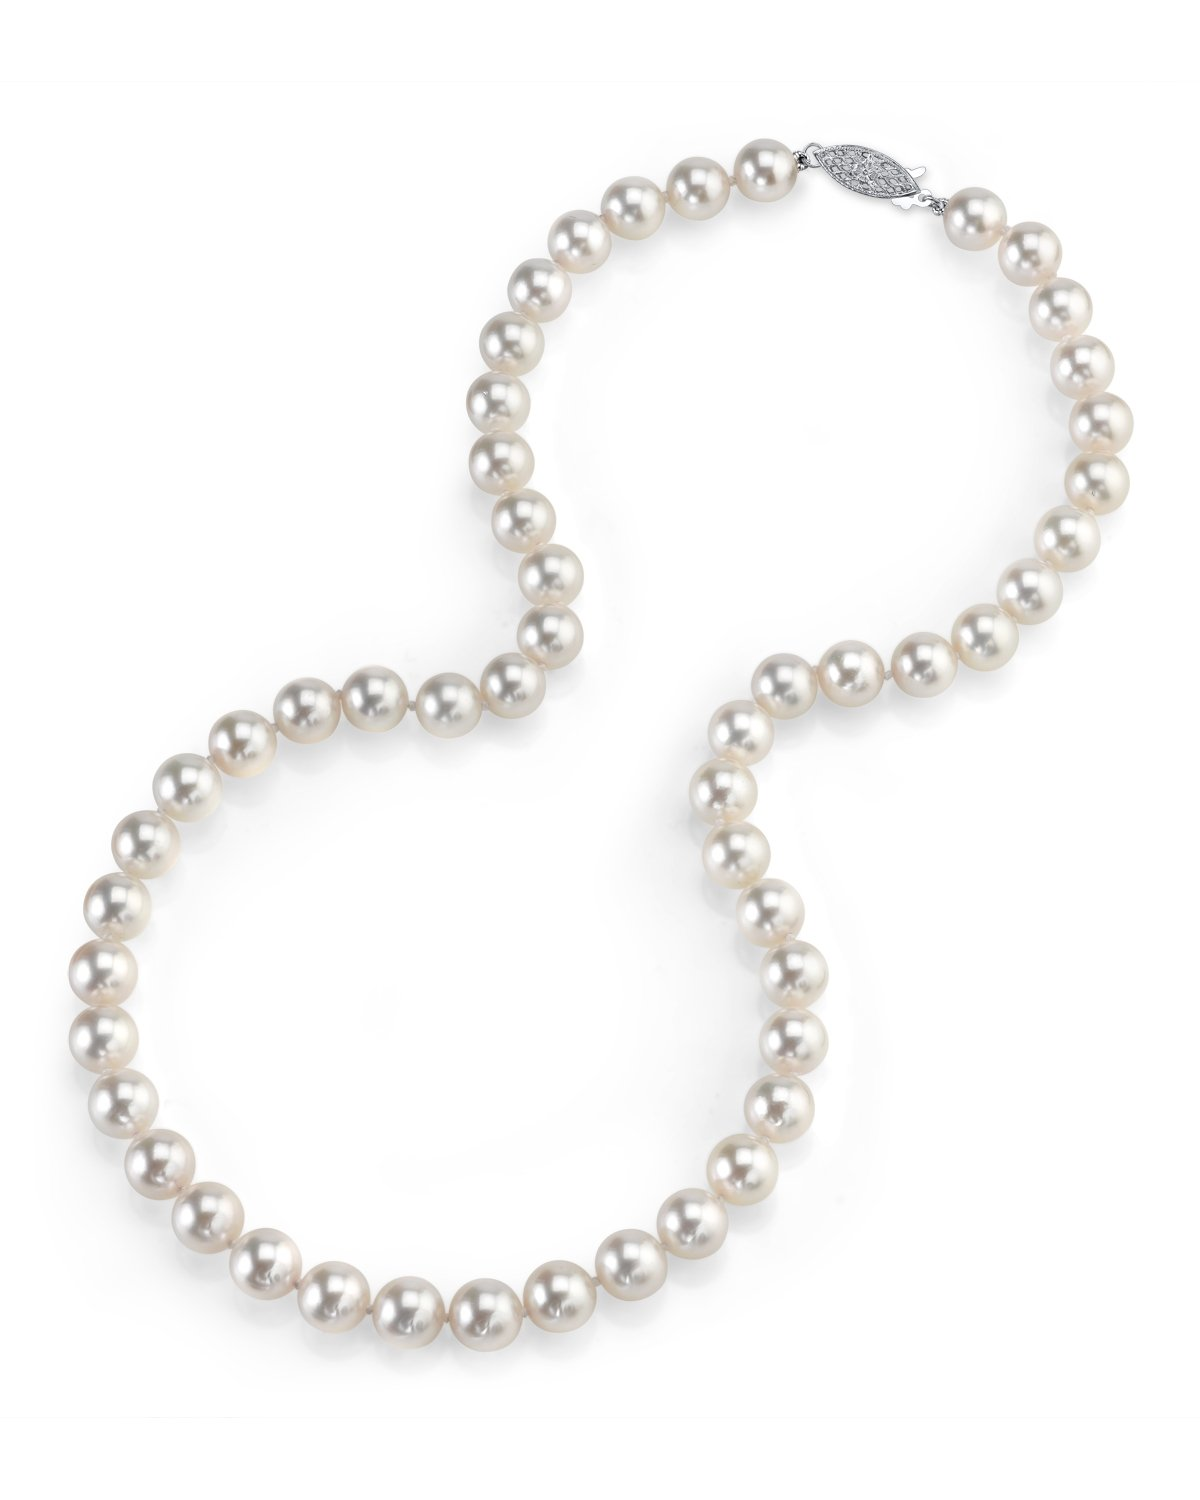 14K Gold 7.0-7.5mm Japanese Akoya Saltwater White Cultured Pearl Necklace - AAA Quality, 16'' Choker Length